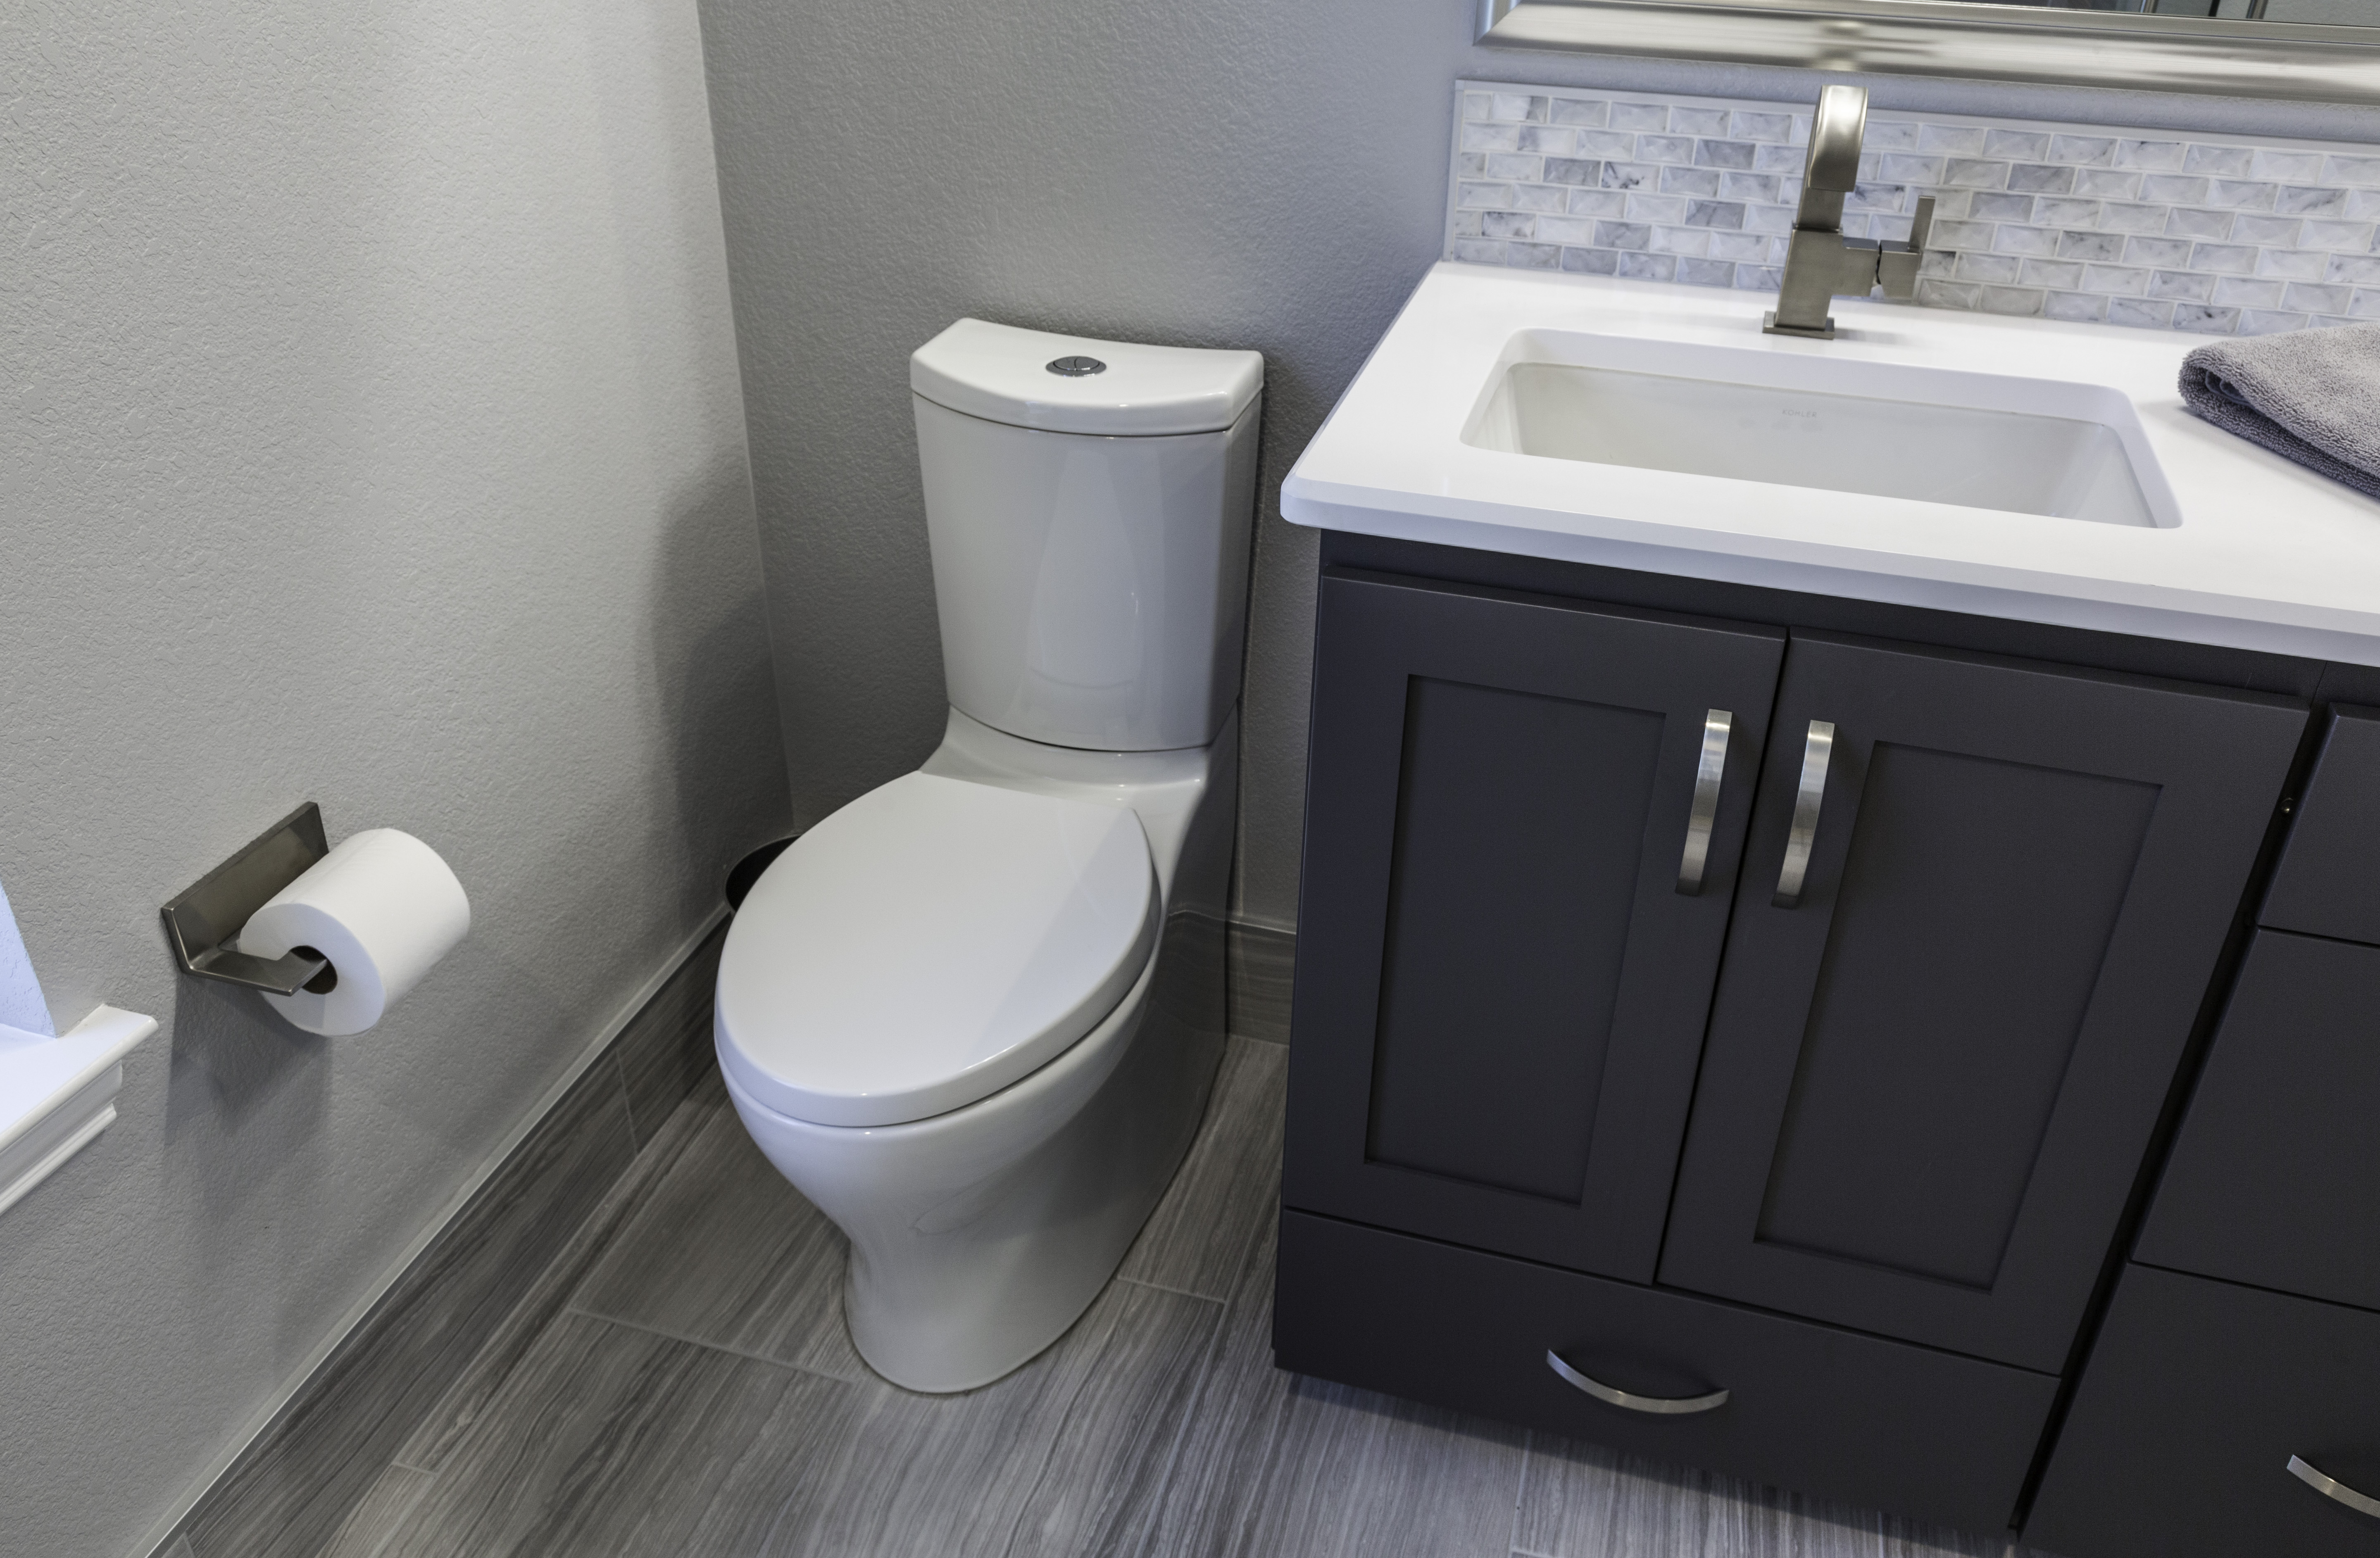 toilet with two flush options soft flush hard flush water saving